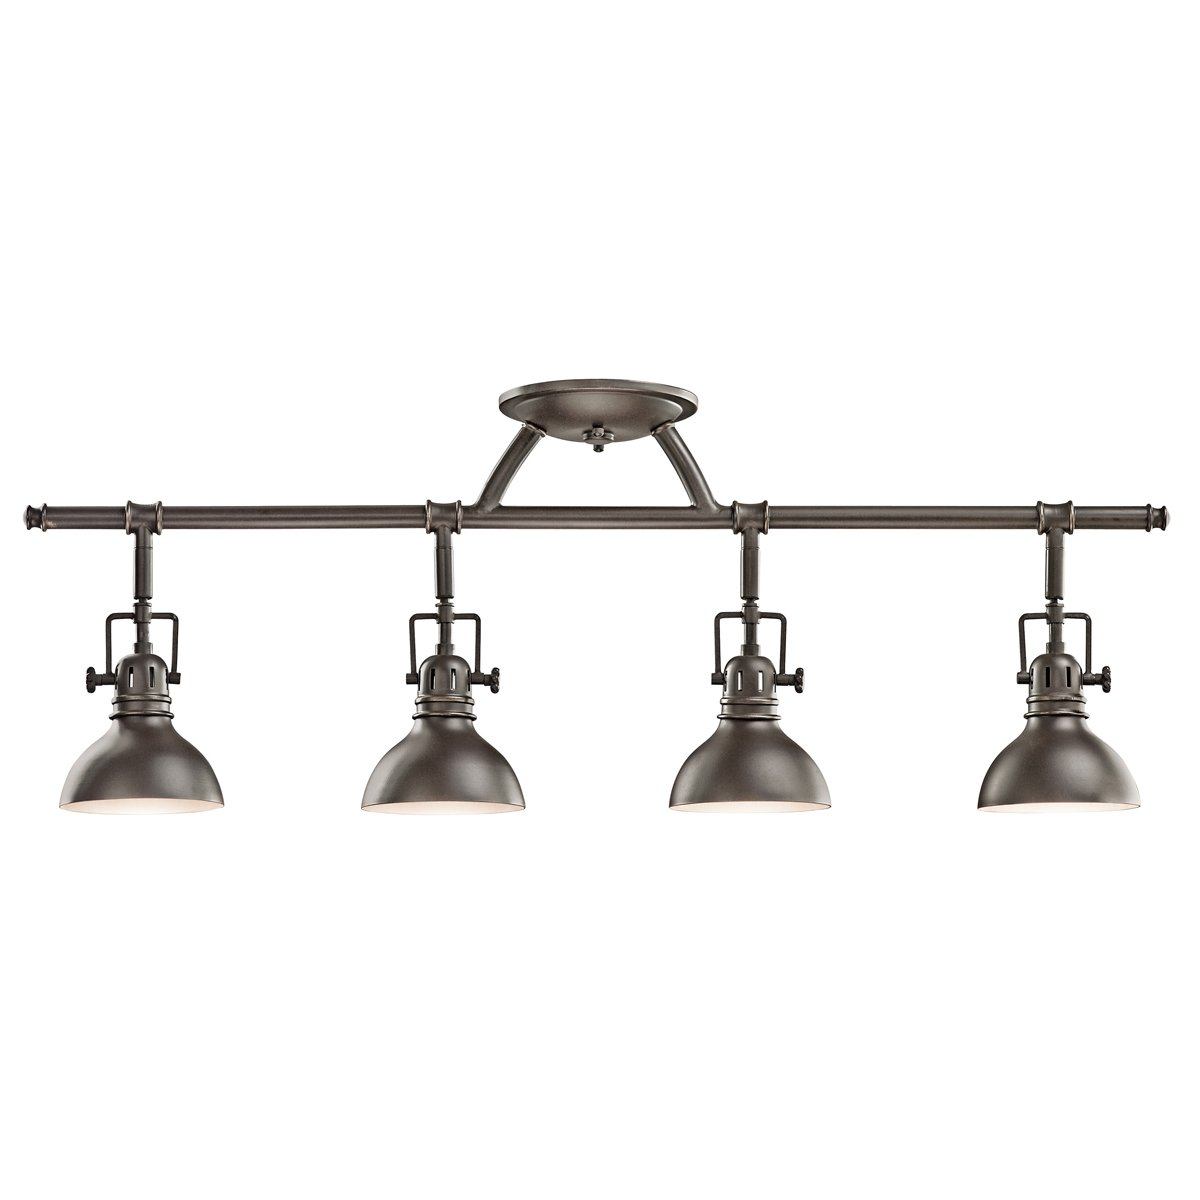 Kichler Lighting Kitchen Lighting Kichler Lighting 7050oz 3 Light Fixed Rail Directional Light Old